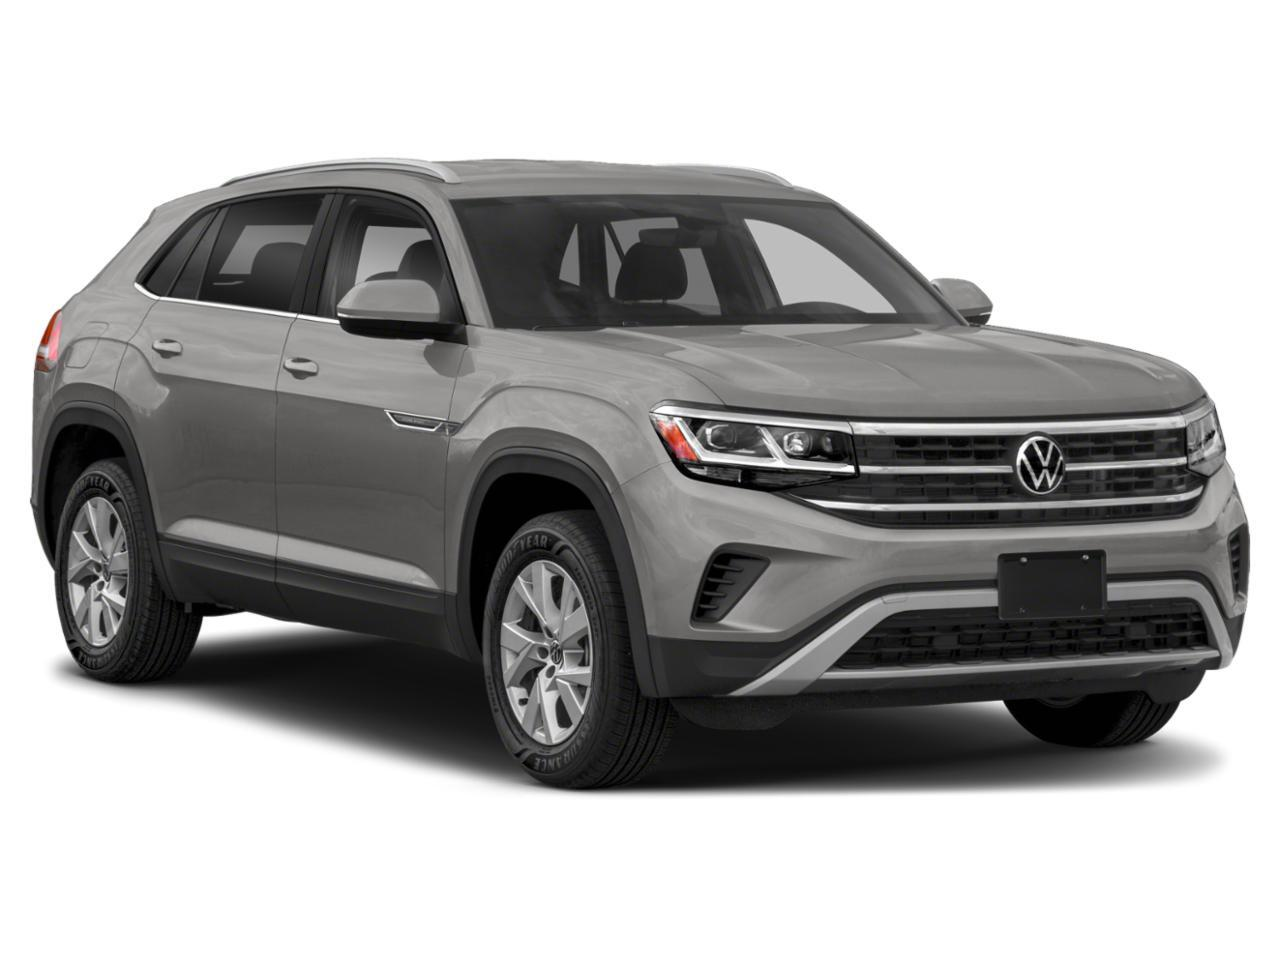 2021 Volkswagen Atlas Cross Sport 3.6L V6 SE w/Technology Walnut Creek CA